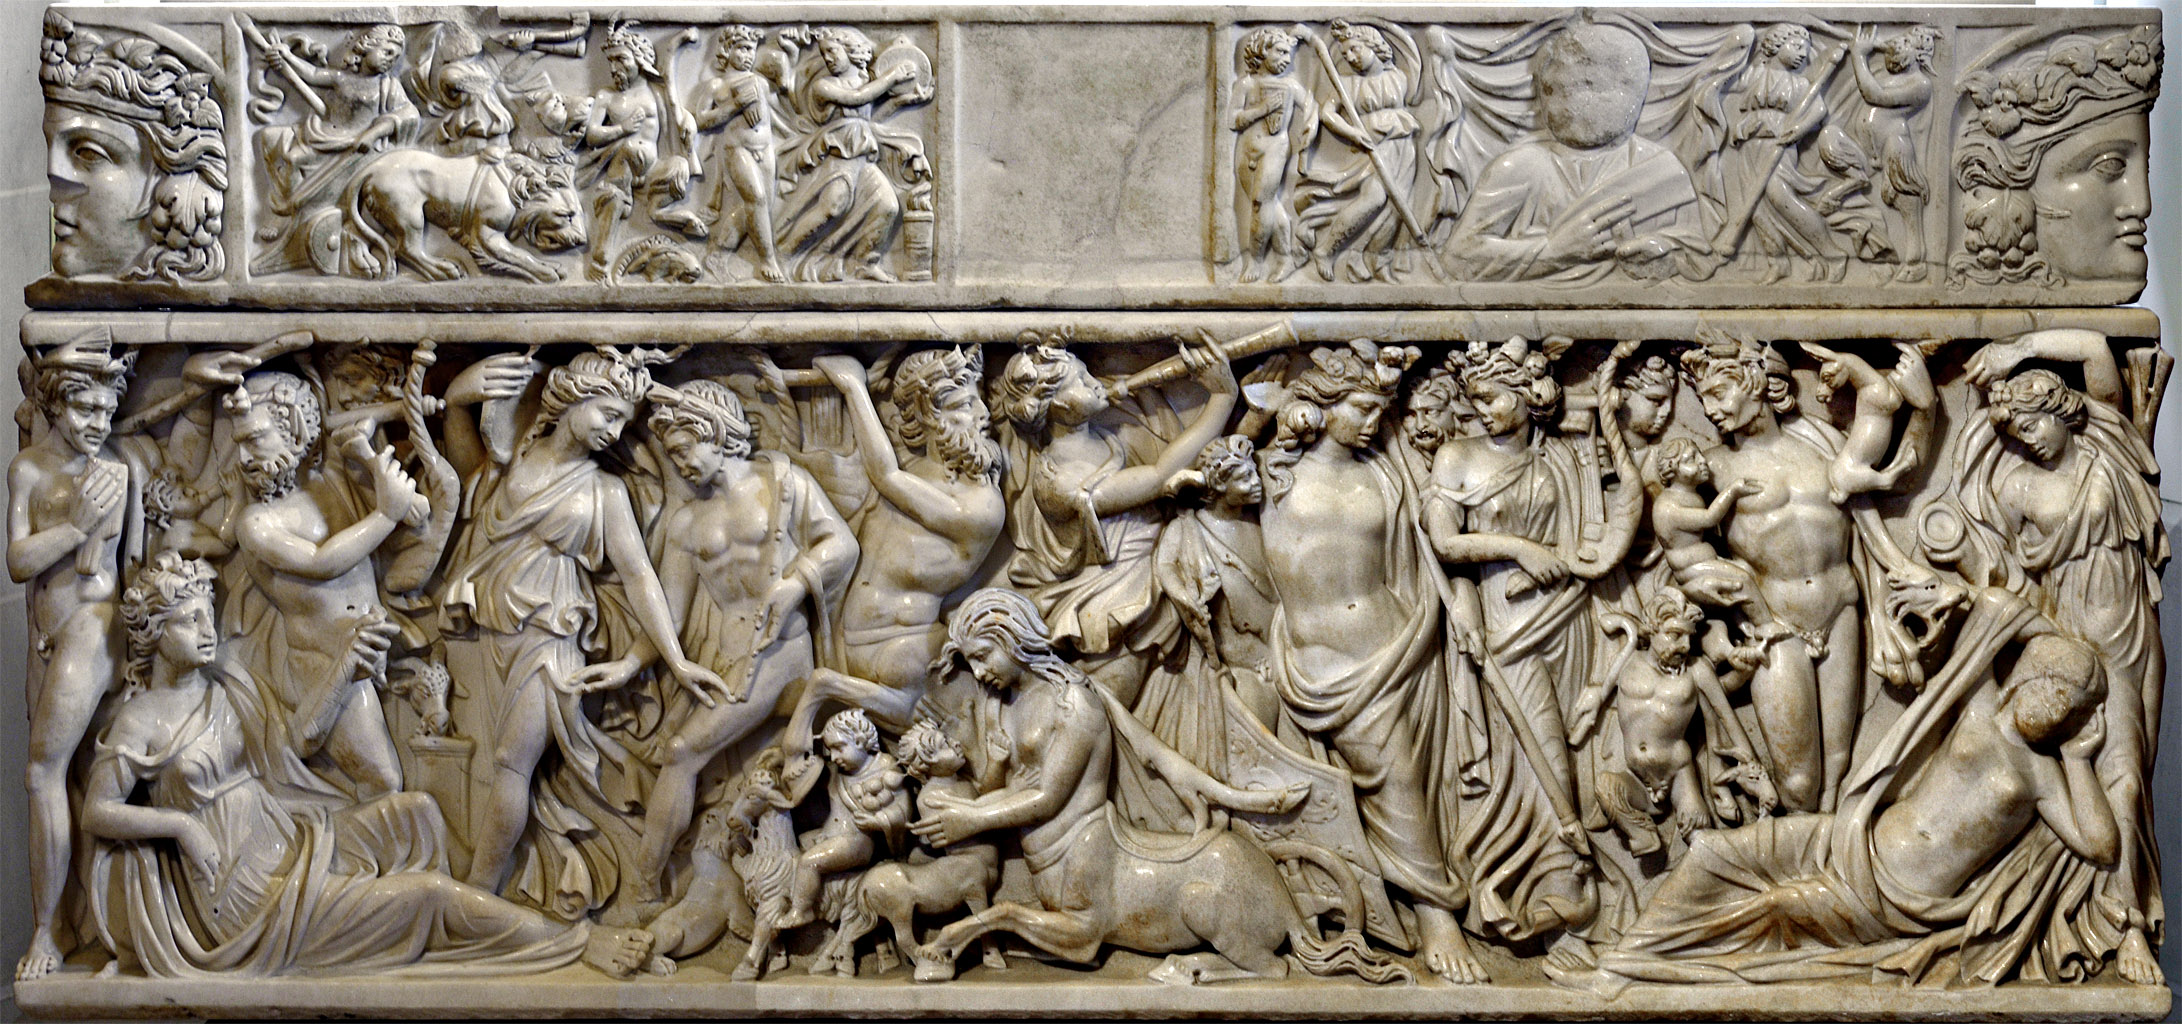 Sarcophagus with a myth of Dionysus and Ariadne. Marble. Ca. 235 CE.  Inv. No. Ma 1346. Paris, Louvre Museum